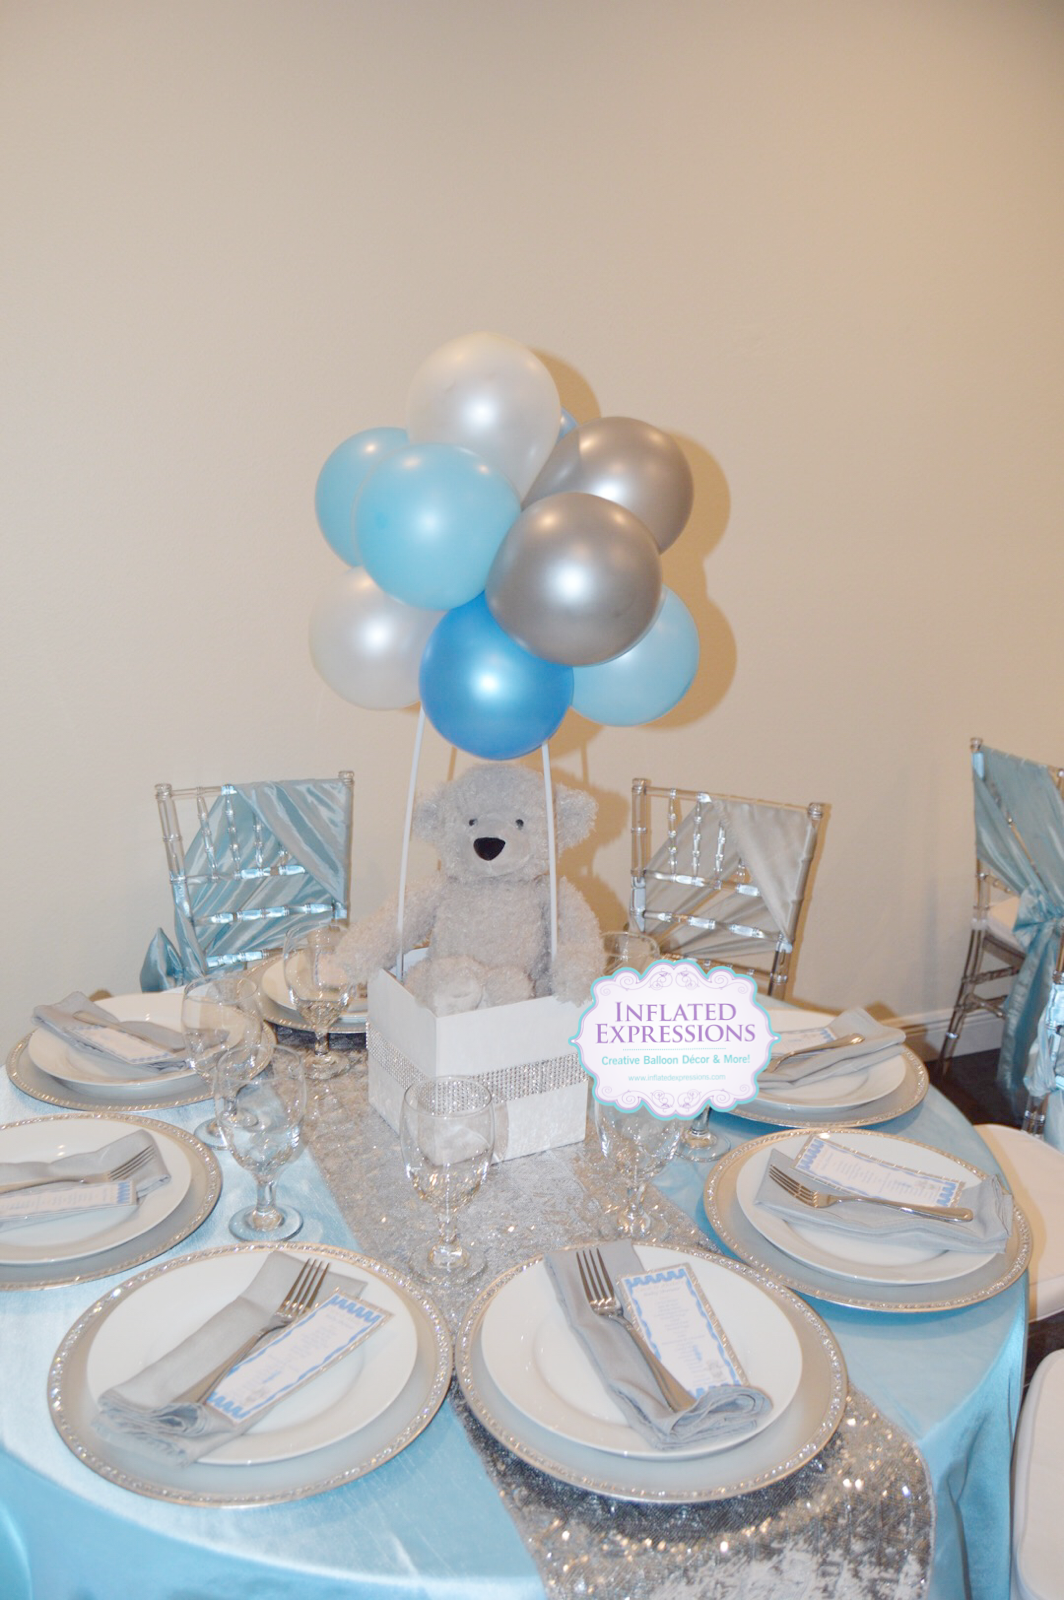 Teddy Bear Topiary Ball Balloon Centerpiece Baby Shower